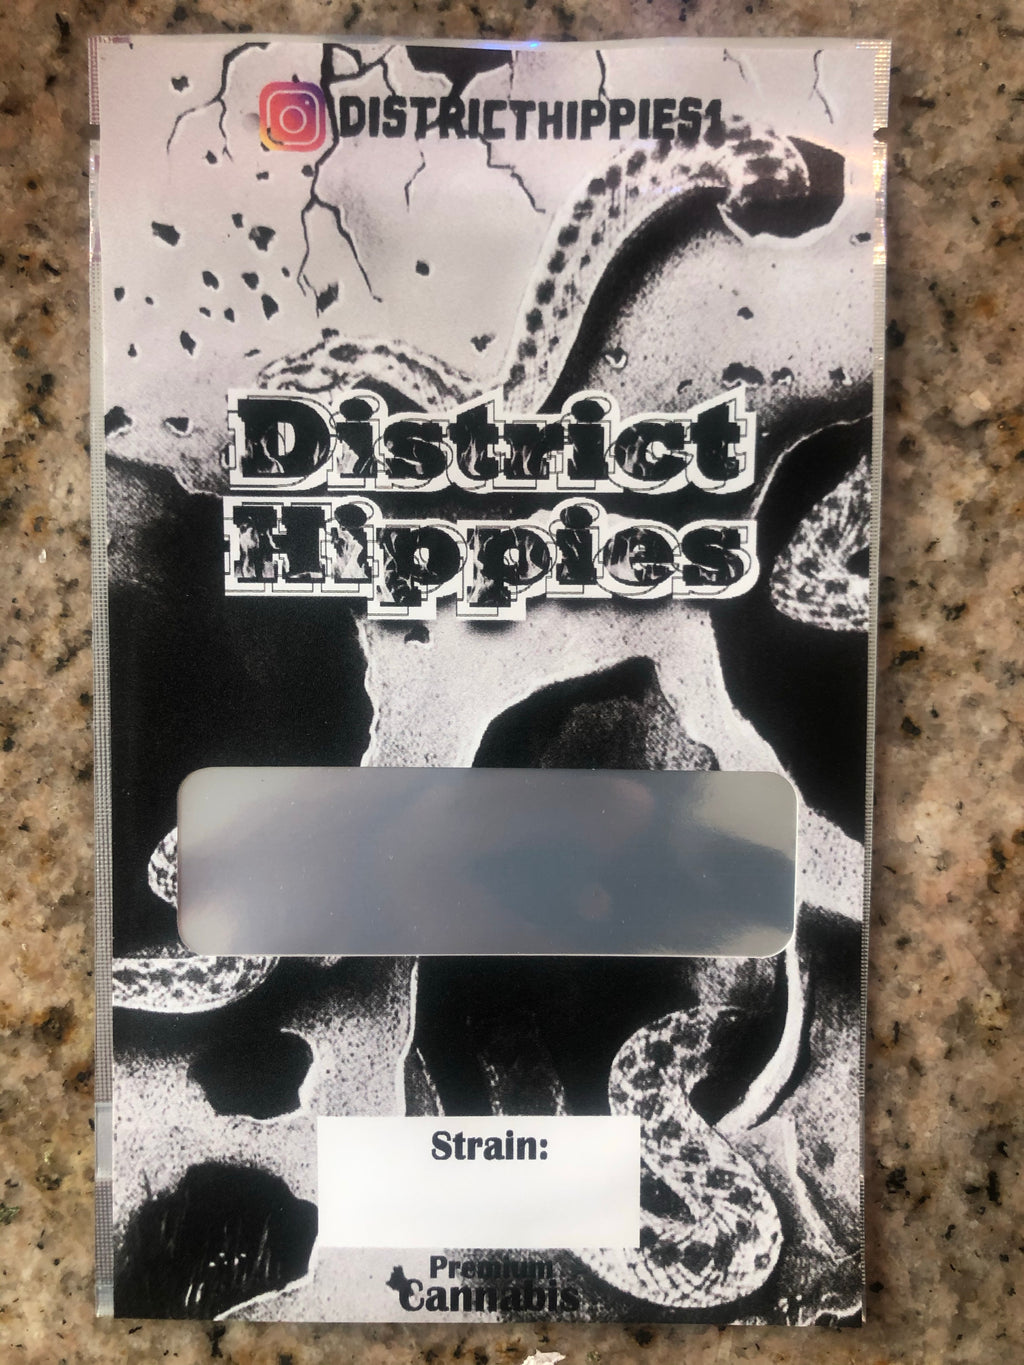 (DUMMIES) DISTRICT HIPPIES BAG